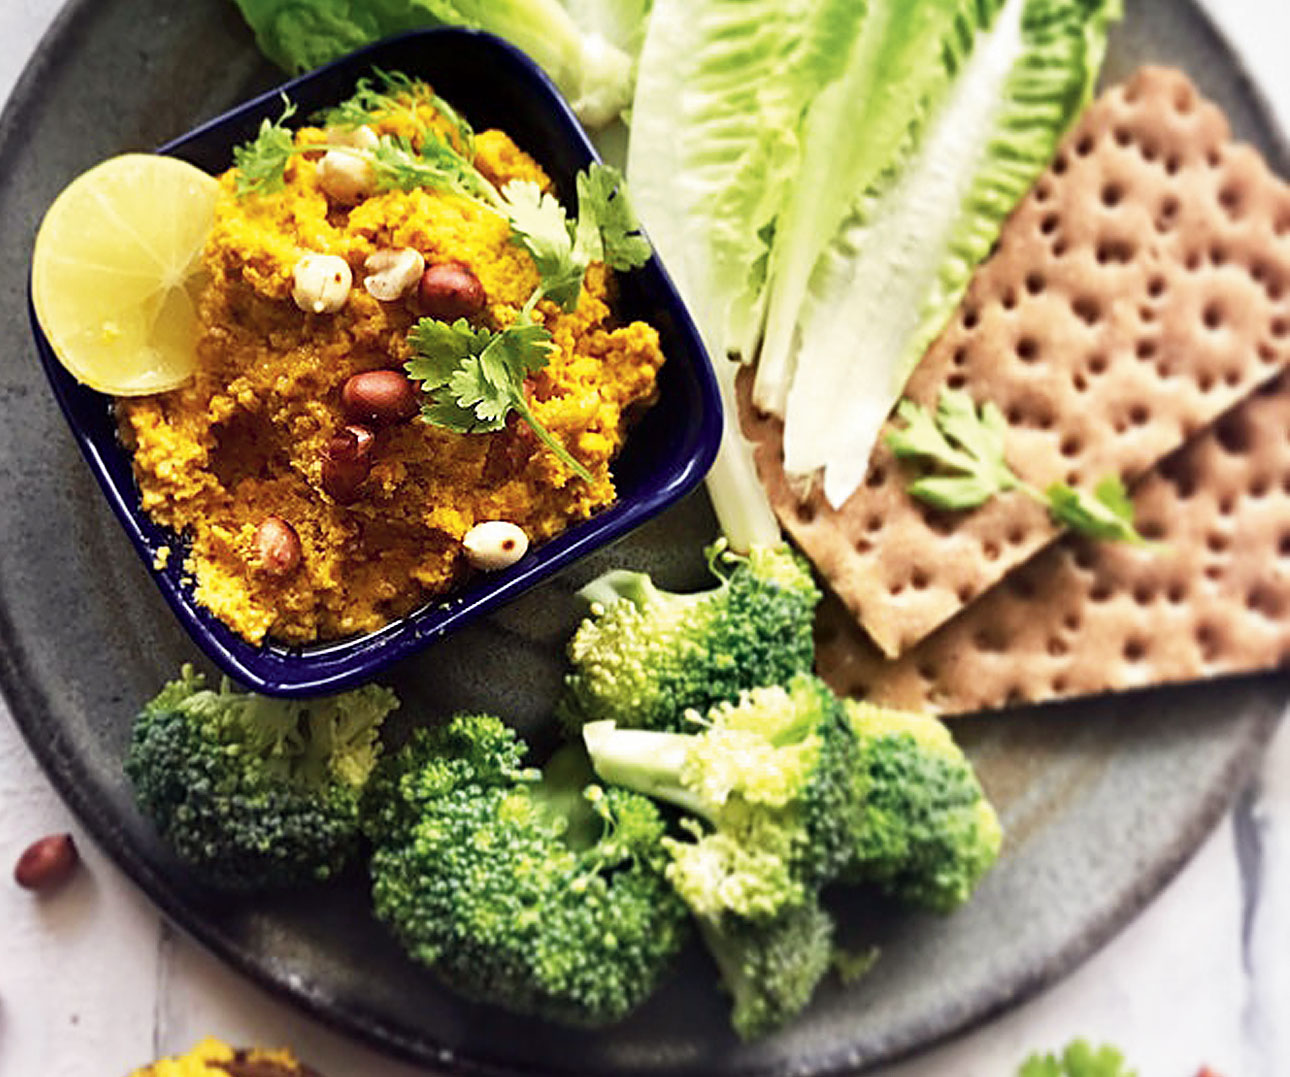 Curried Peanut Dip